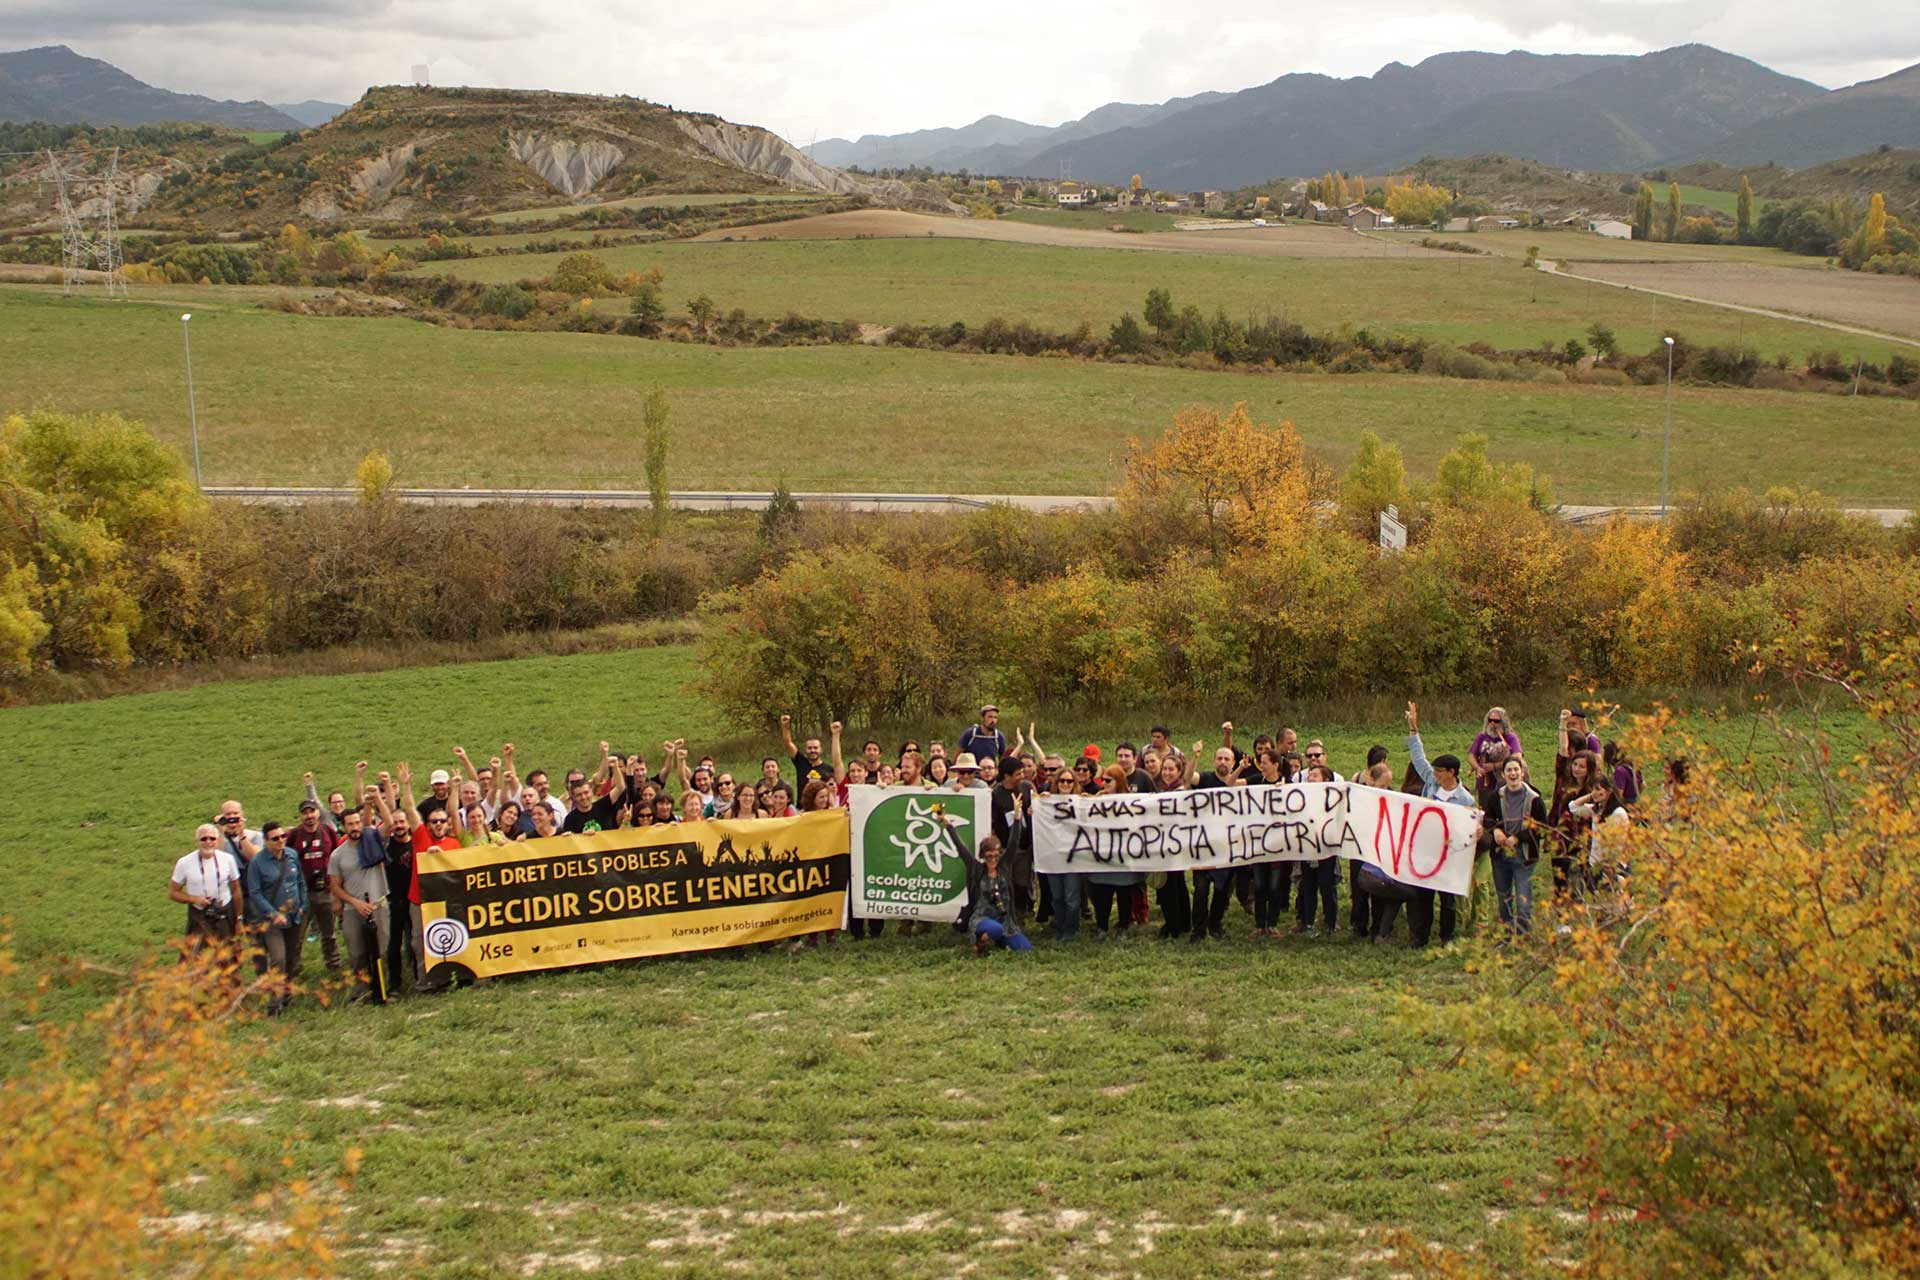 Catalonia, Spain: Building a powerful regional network for energy sovereignty